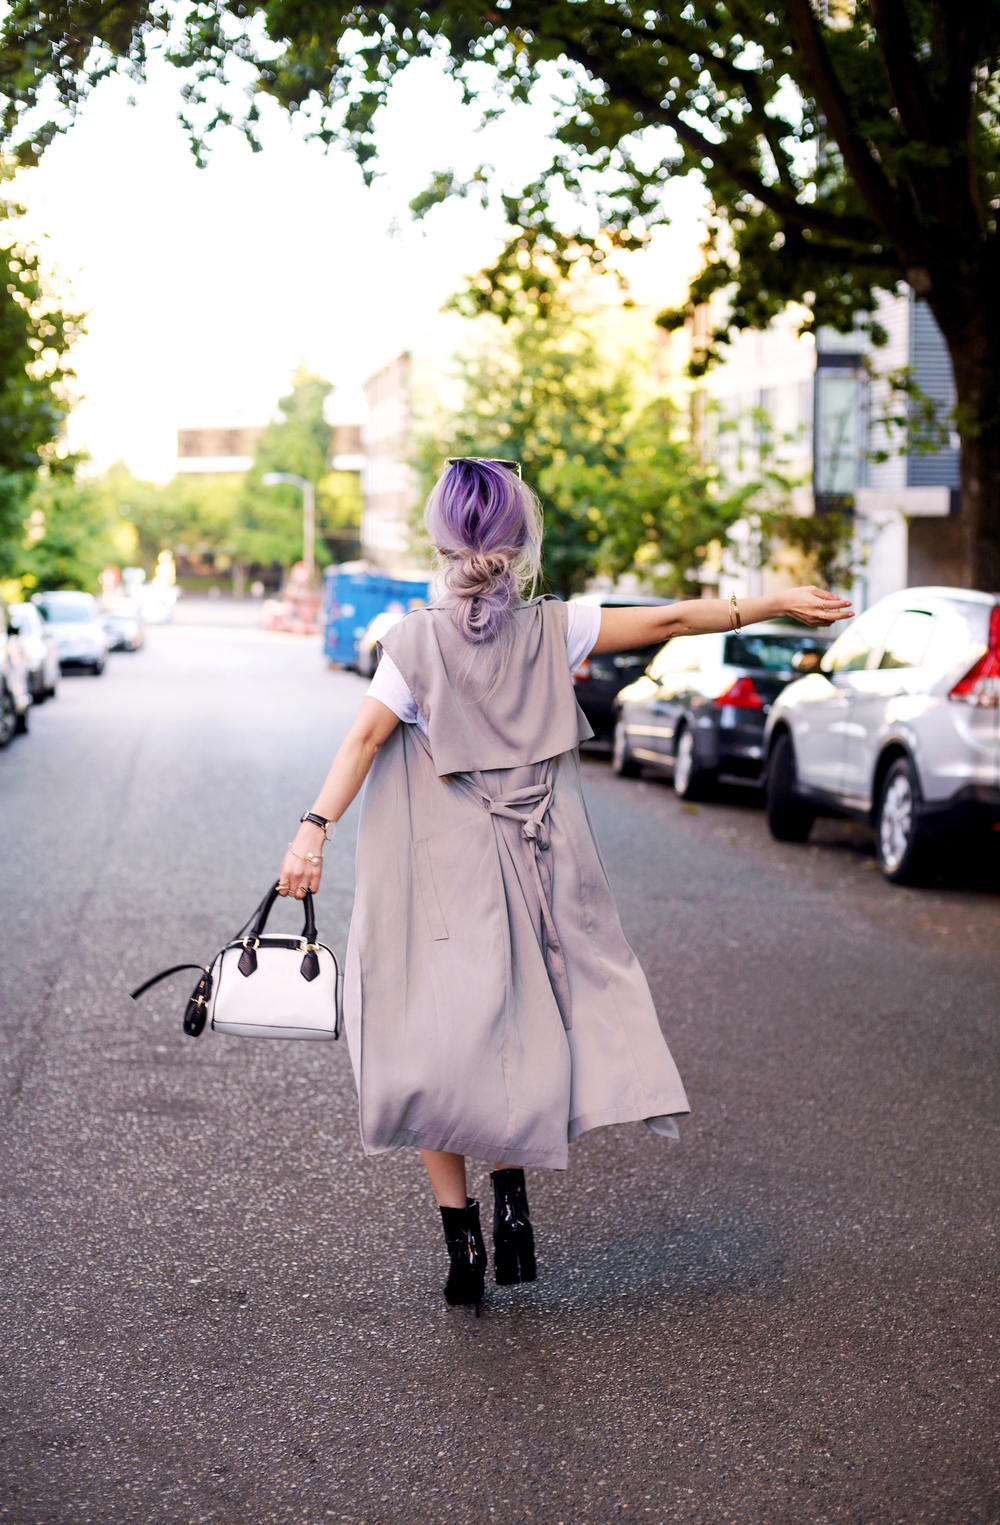 Dezzal Grey Trench Coat_TOPSHOP White T-shirt_She Inside Highwaisted Denim Mini Skit_ALDO Patent Boots_ZARA Mini Bag_Suede Choker_Daniel Wellington Watch_Aikas Love Cloeset_Seattle Fashion Blogger from Japan_Lavender Hair_Messy low bun Hair 12